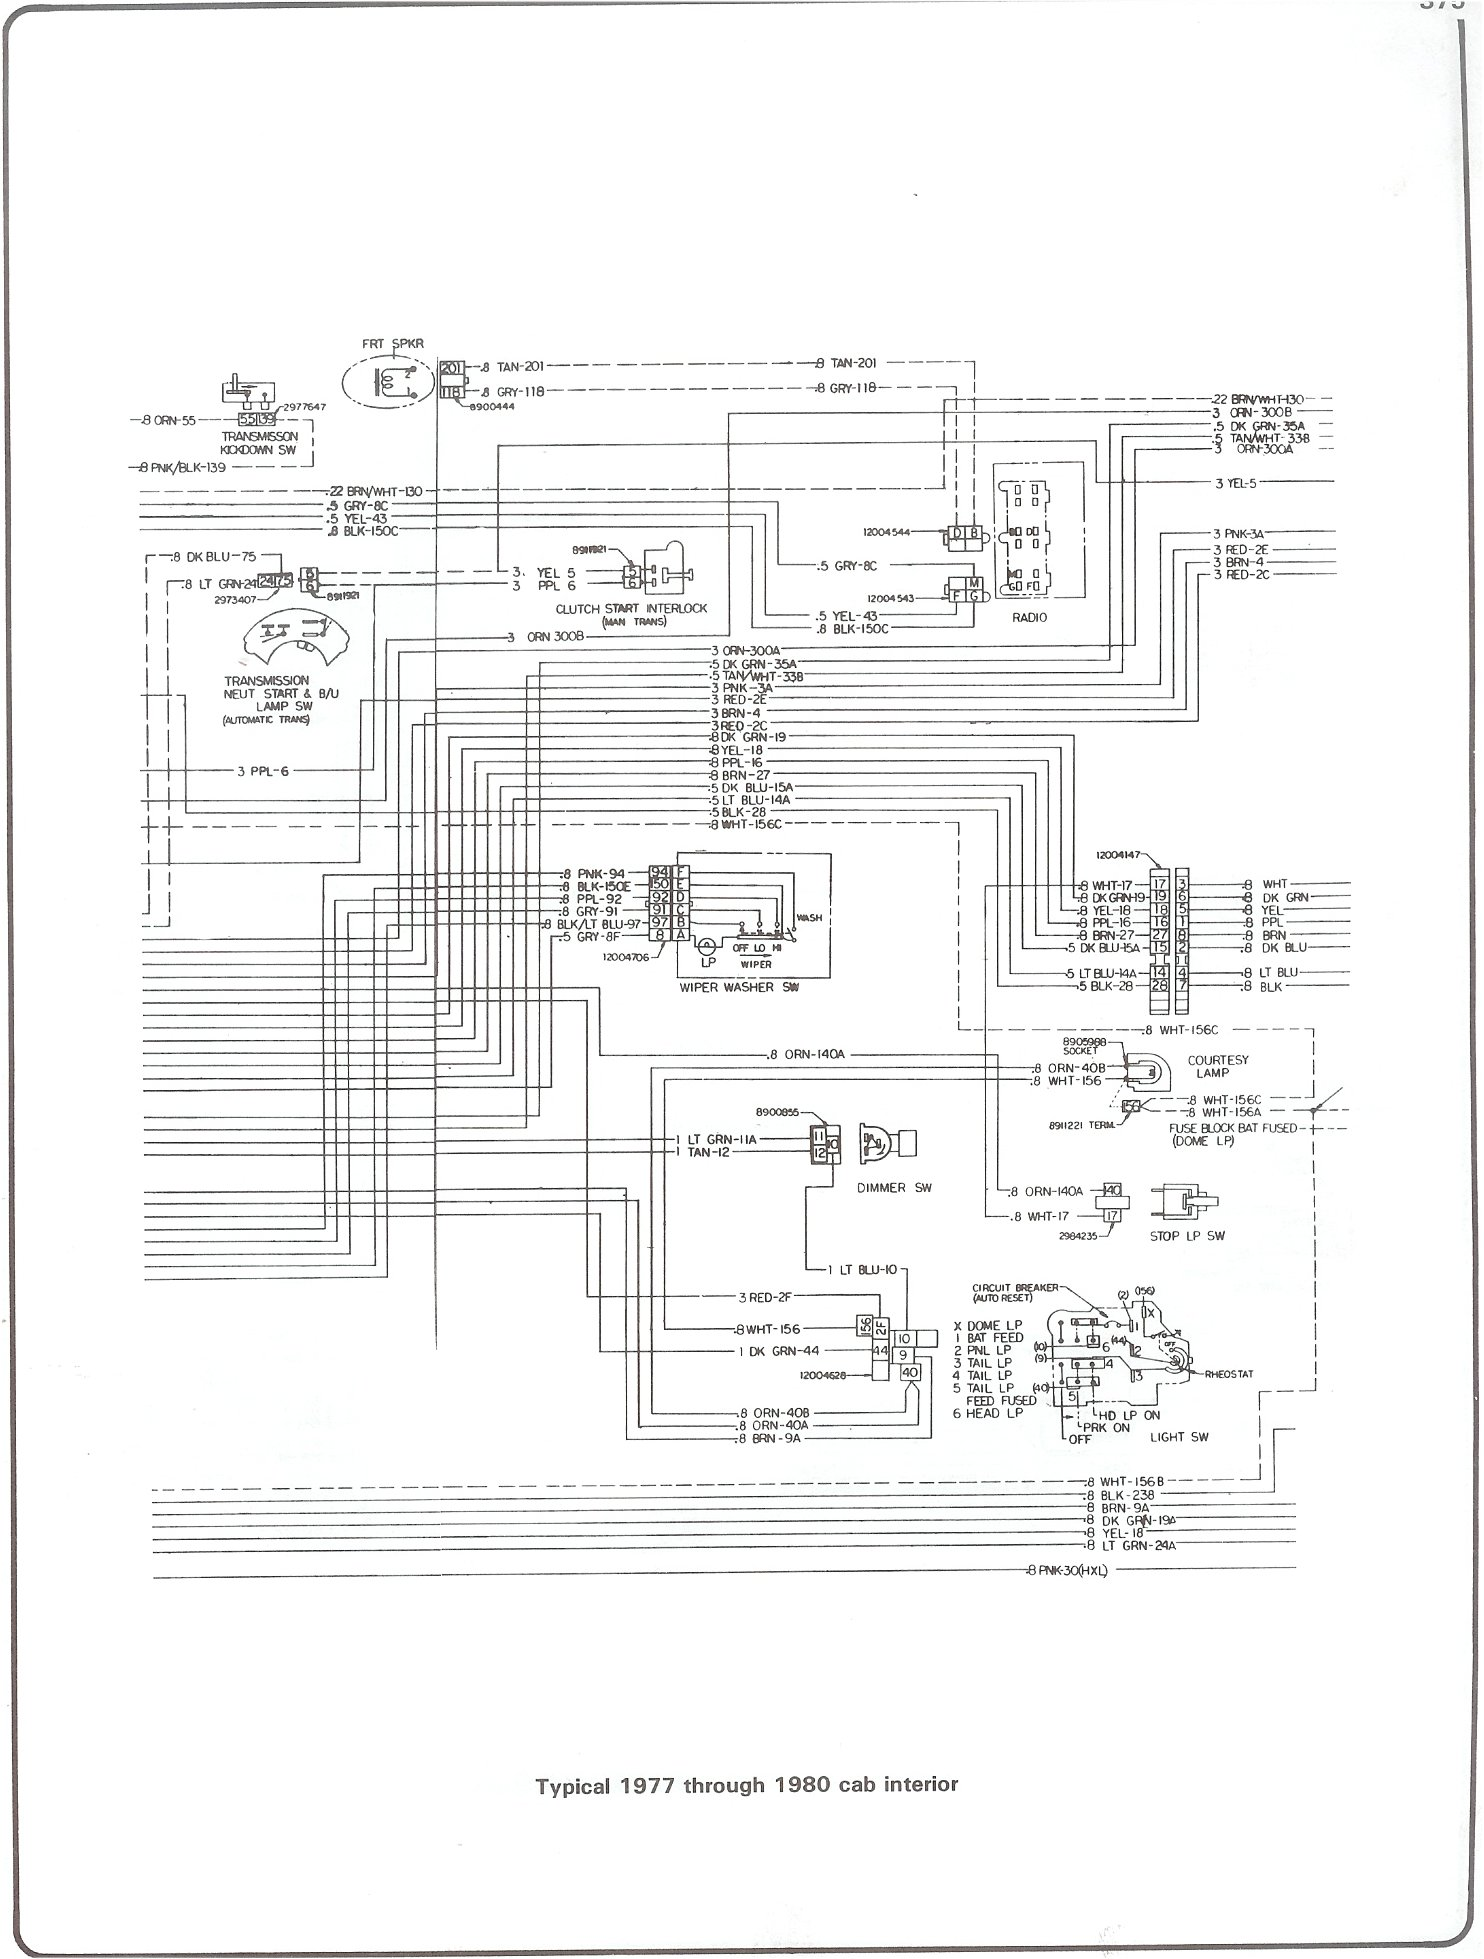 1966 Chevy Wiring Diagram